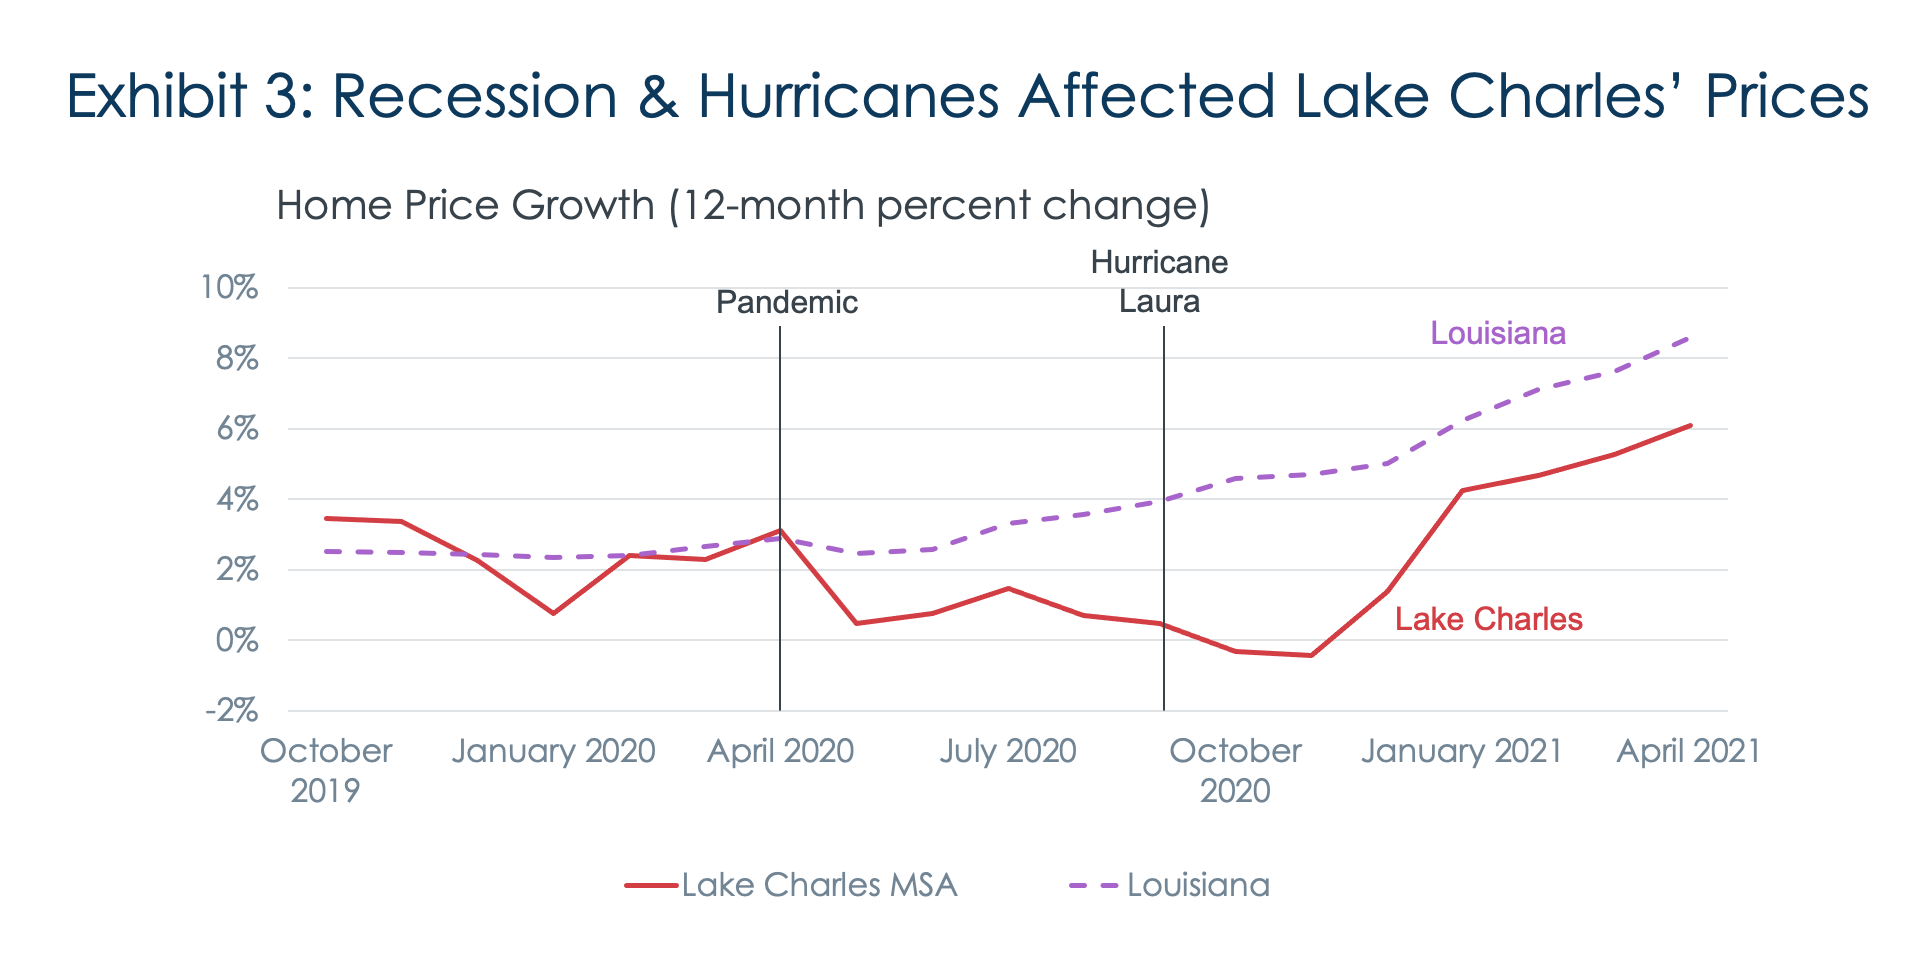 Exhibit 3: Recession & Hurricanes Affected Lake Charles' Prices